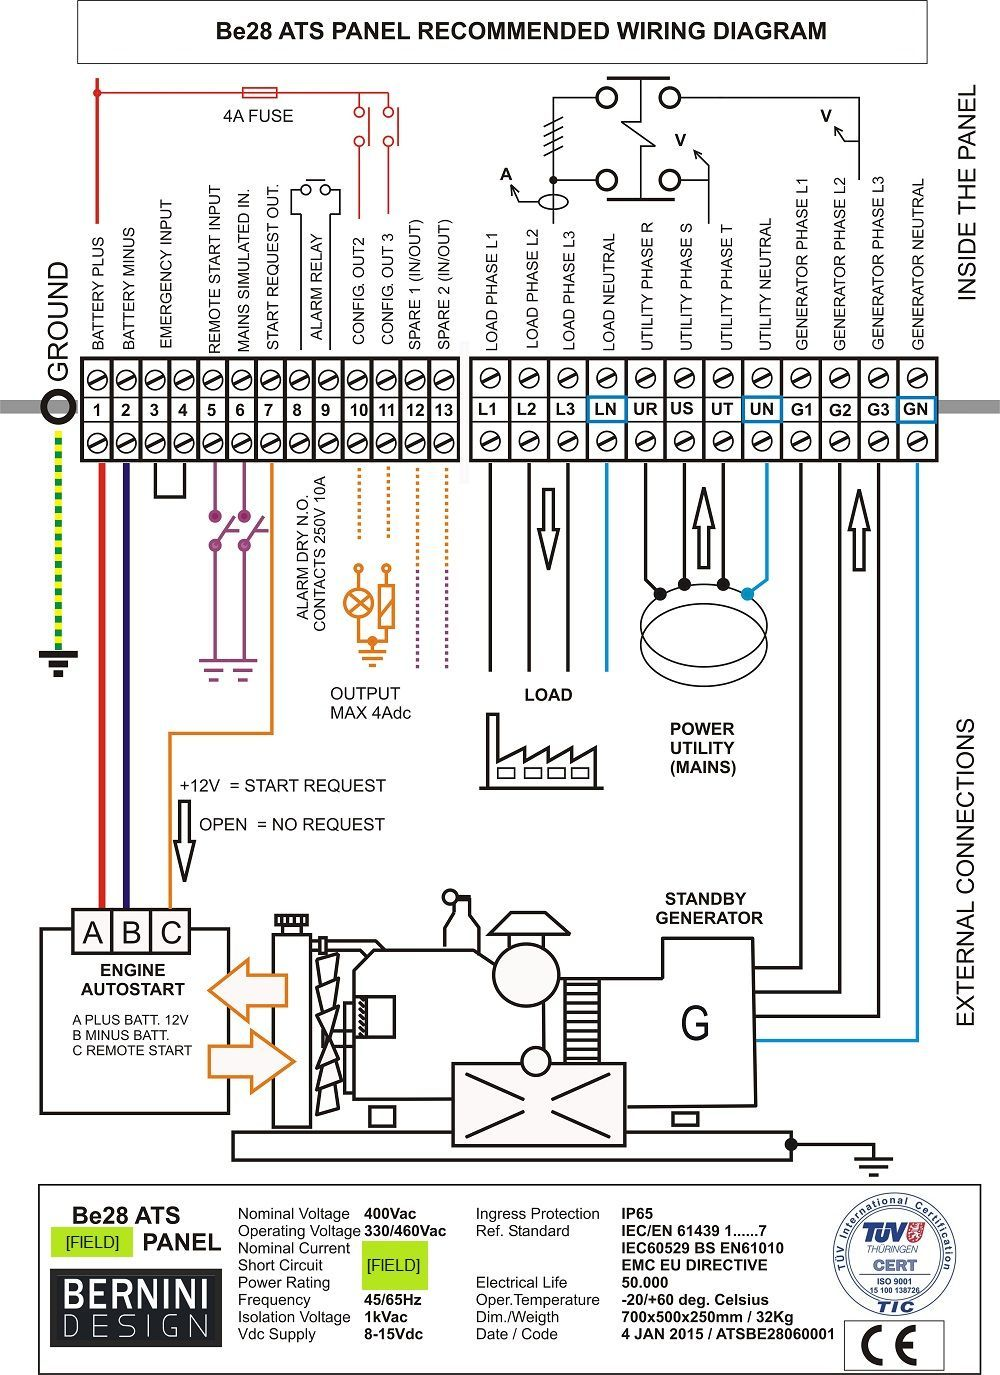 generac automatic transfer switch wiring diagram and generator generac transfer switch diagram generac automatic transfer switch [ 1000 x 1375 Pixel ]